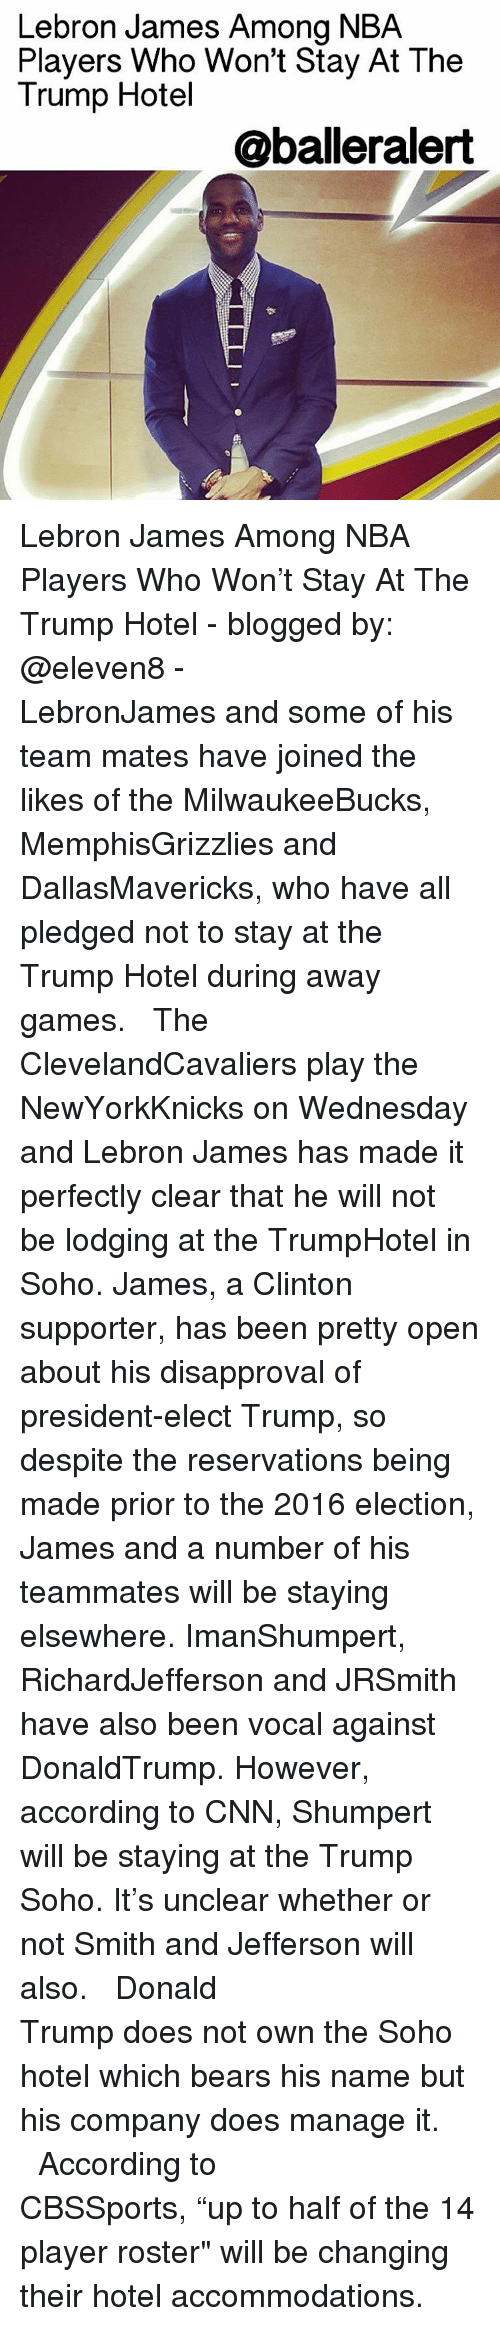 """2016 Elections: Lebron James Among NBA  Players Who Won't Stay At The  Trump Hotel  @balleralert Lebron James Among NBA Players Who Won't Stay At The Trump Hotel - blogged by: @eleven8 - ⠀⠀⠀⠀⠀⠀⠀⠀⠀ ⠀⠀⠀⠀⠀⠀⠀⠀⠀ LebronJames and some of his team mates have joined the likes of the MilwaukeeBucks, MemphisGrizzlies and DallasMavericks, who have all pledged not to stay at the Trump Hotel during away games. ⠀⠀⠀⠀⠀⠀⠀⠀⠀ ⠀⠀⠀⠀⠀⠀⠀⠀⠀ The ClevelandCavaliers play the NewYorkKnicks on Wednesday and Lebron James has made it perfectly clear that he will not be lodging at the TrumpHotel in Soho. James, a Clinton supporter, has been pretty open about his disapproval of president-elect Trump, so despite the reservations being made prior to the 2016 election, James and a number of his teammates will be staying elsewhere. ImanShumpert, RichardJefferson and JRSmith have also been vocal against DonaldTrump. However, according to CNN, Shumpert will be staying at the Trump Soho. It's unclear whether or not Smith and Jefferson will also. ⠀⠀⠀⠀⠀⠀⠀⠀⠀ ⠀⠀⠀⠀⠀⠀⠀⠀⠀ Donald Trump does not own the Soho hotel which bears his name but his company does manage it. ⠀⠀⠀⠀⠀⠀⠀⠀⠀ ⠀⠀⠀⠀⠀⠀⠀⠀⠀ According to CBSSports, """"up to half of the 14 player roster"""" will be changing their hotel accommodations."""